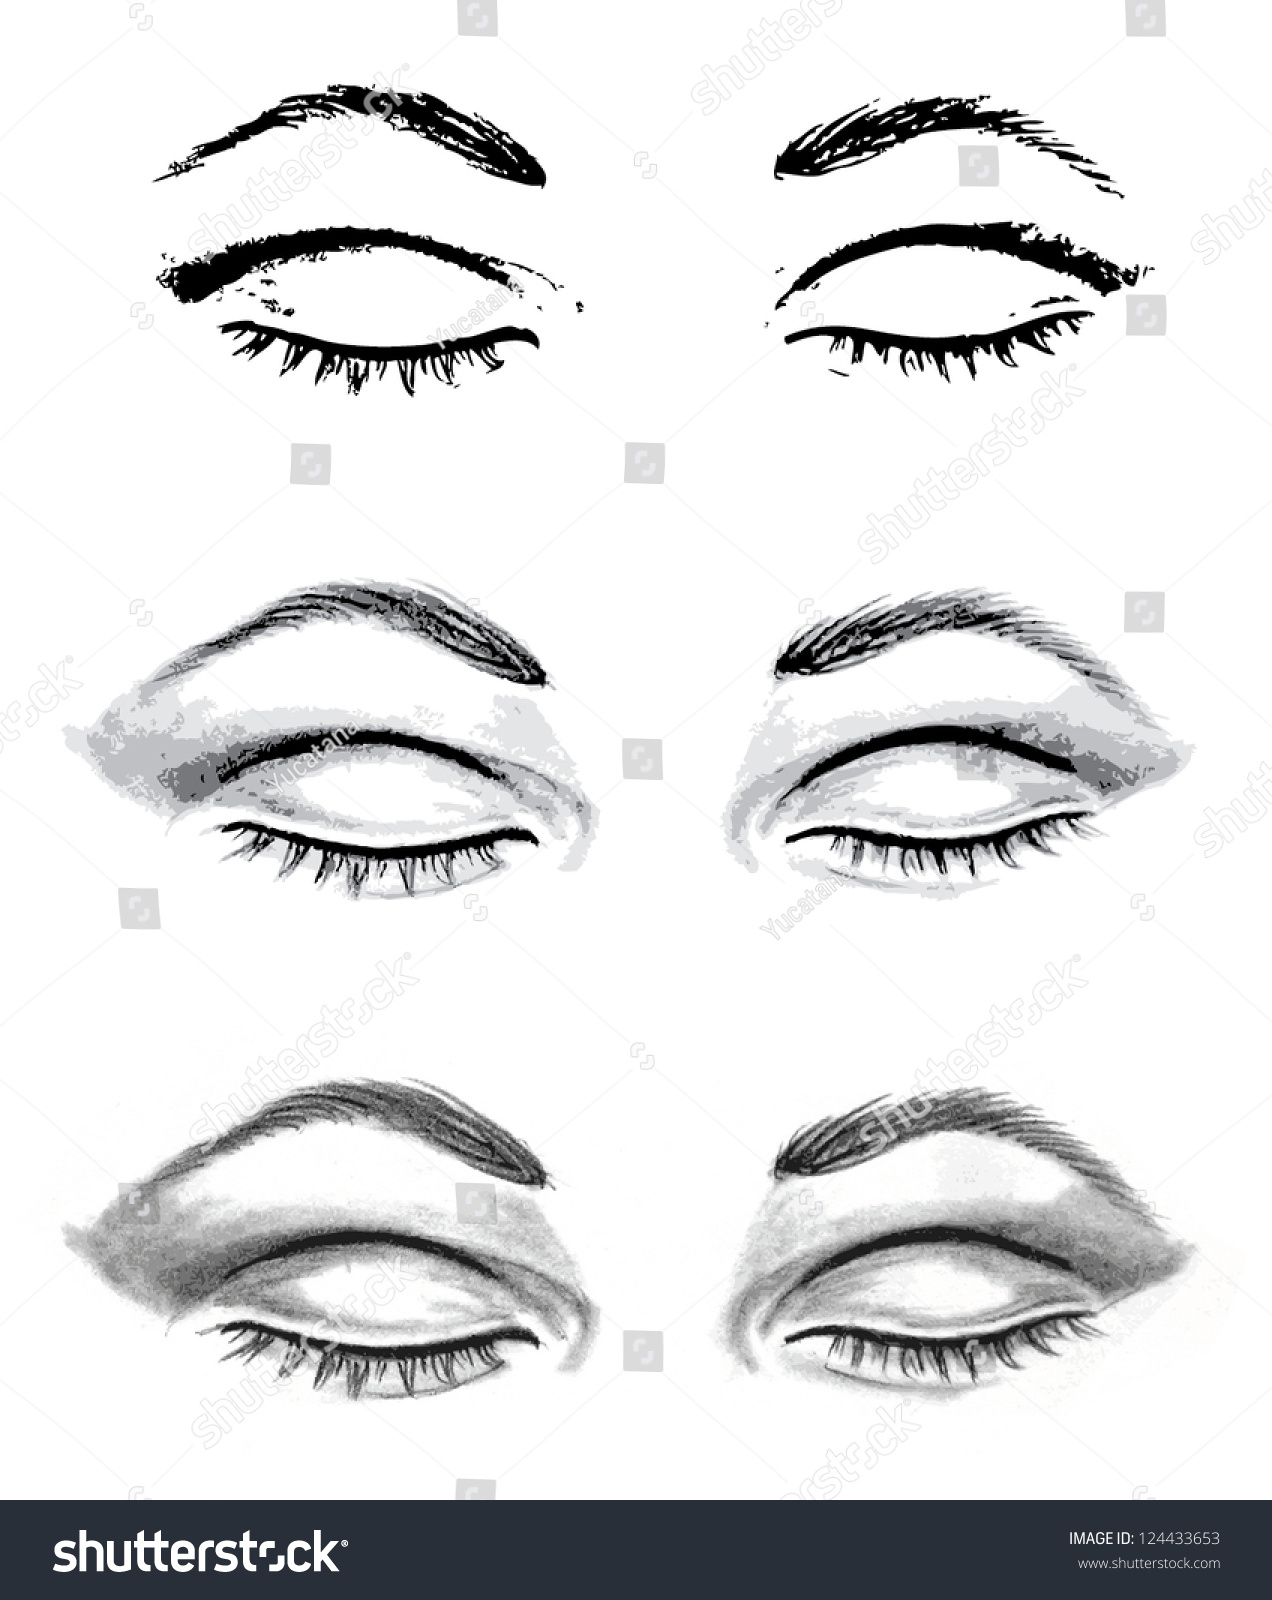 Royalty-free Pencil drawing closed eyes and auto ...